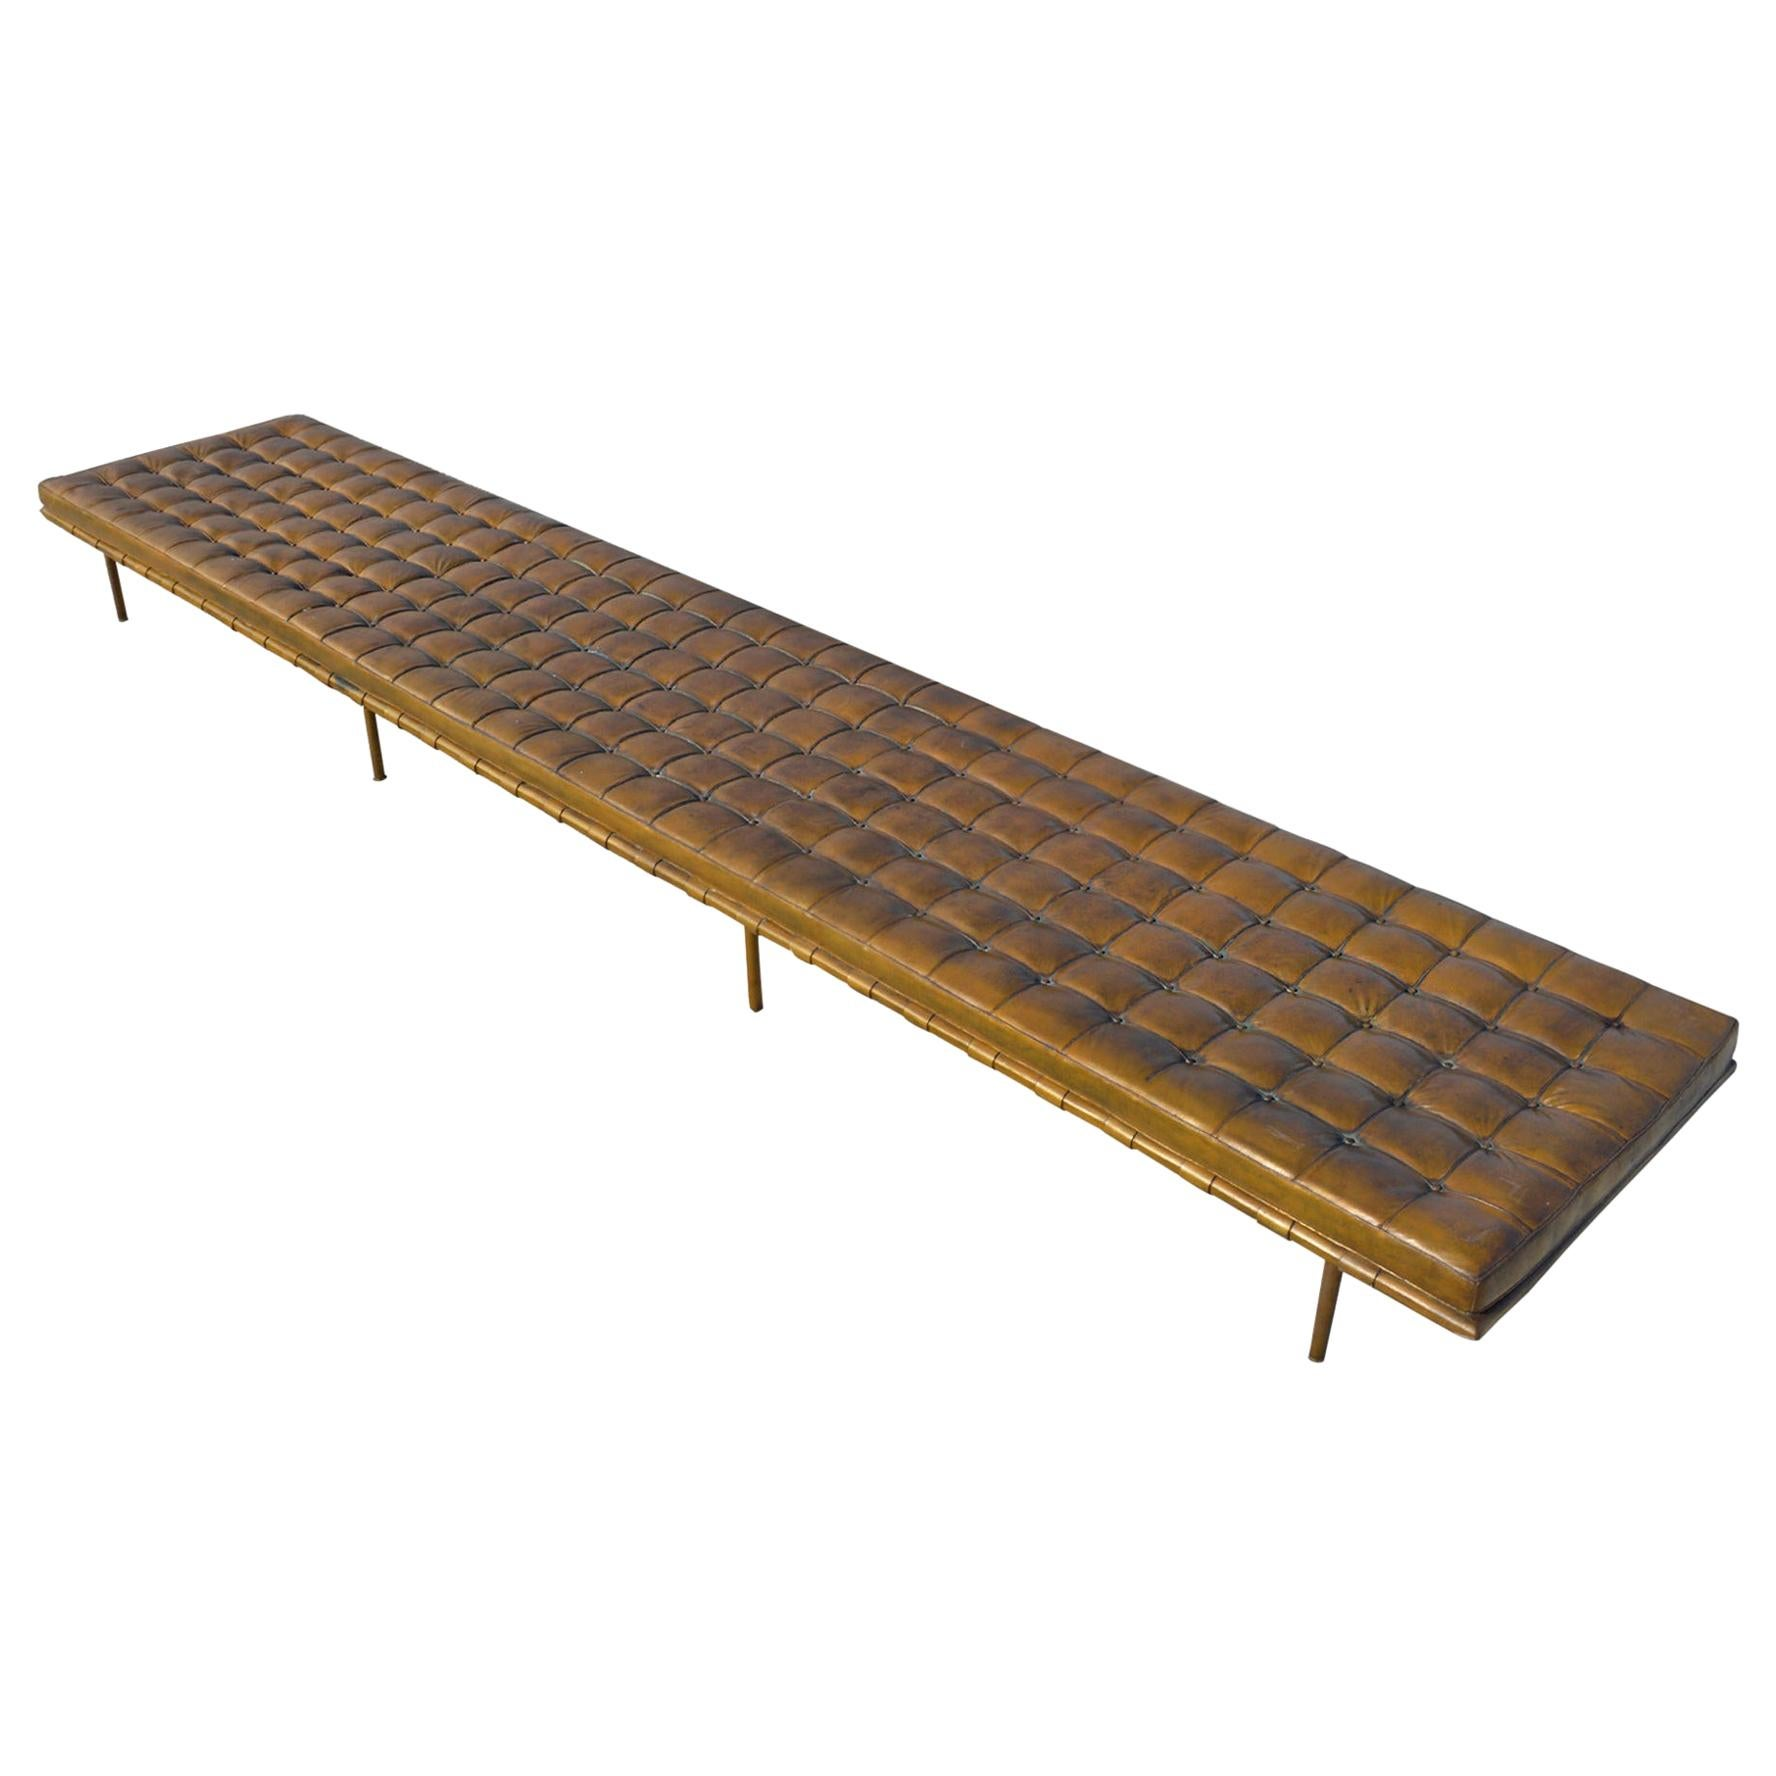 Sixteen Foot Mies van der Rohe Barcelona Daybed from the IBM Building